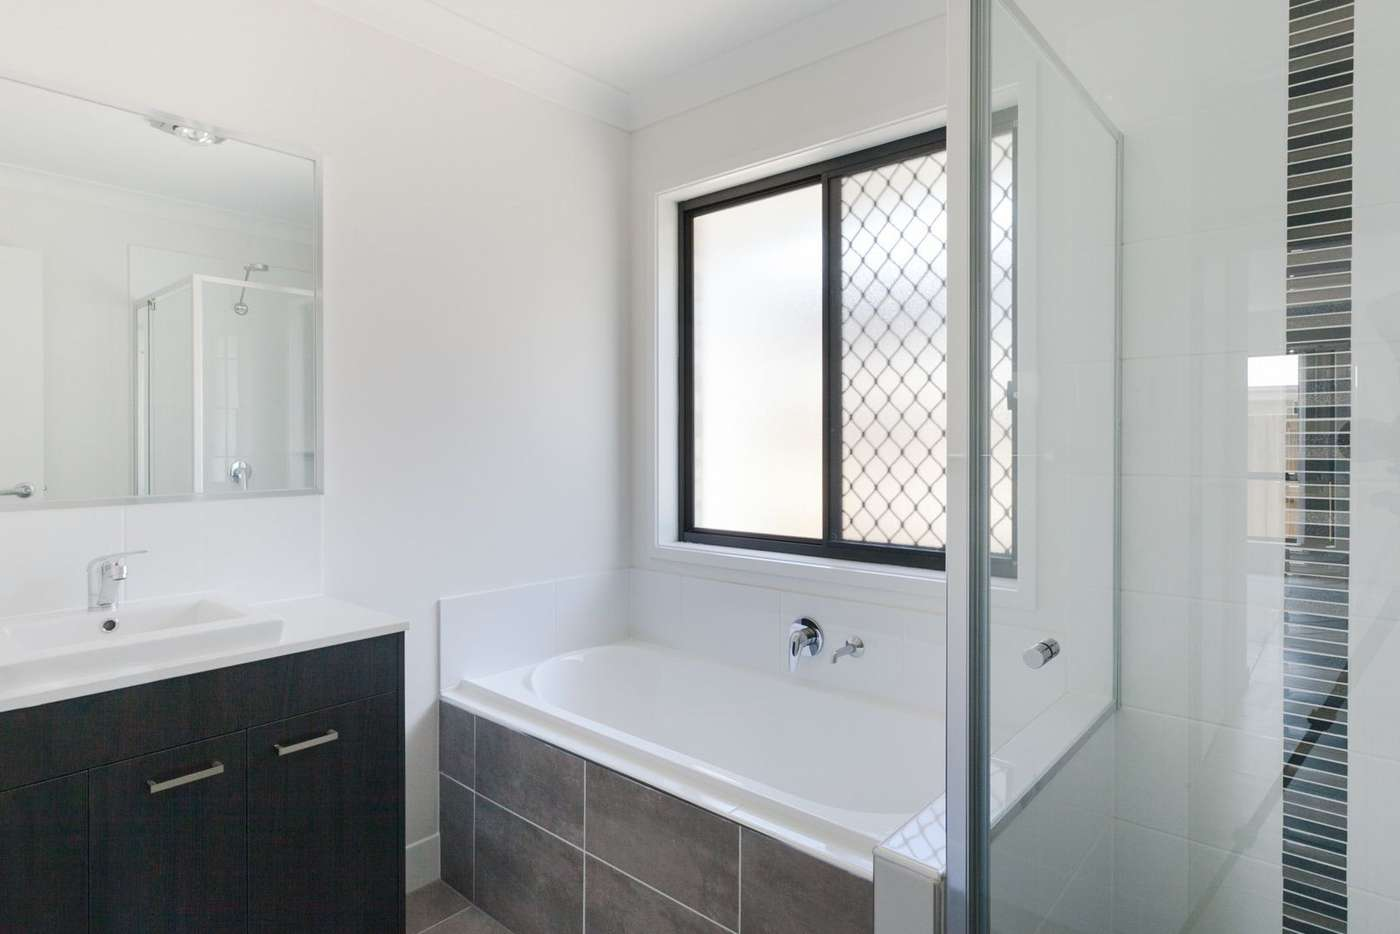 Sixth view of Homely house listing, 44 Cambridge Circuit, Yarrabilba QLD 4207